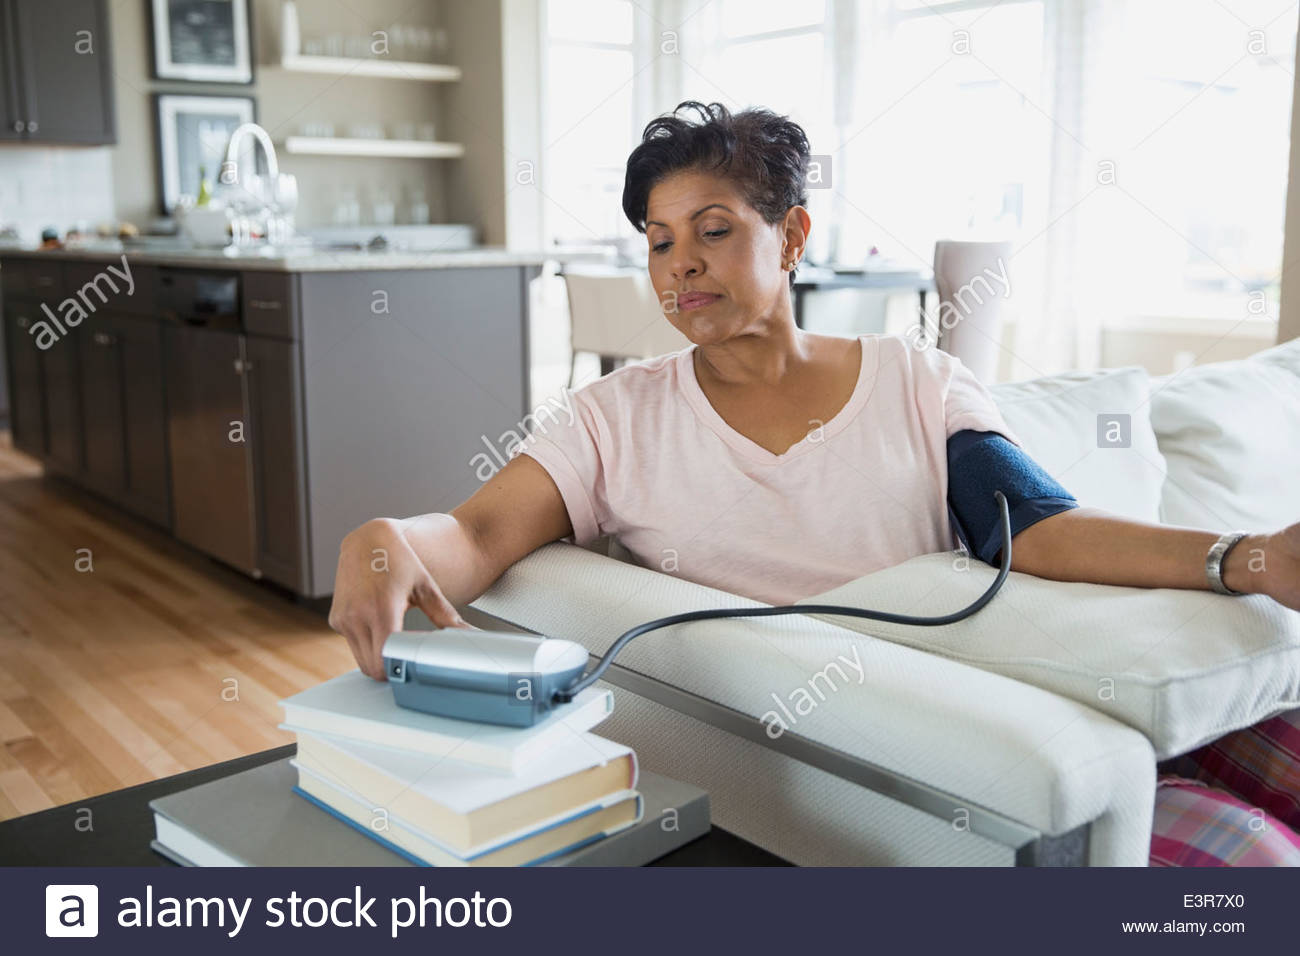 Woman checking blood pressure in living room - Stock Image